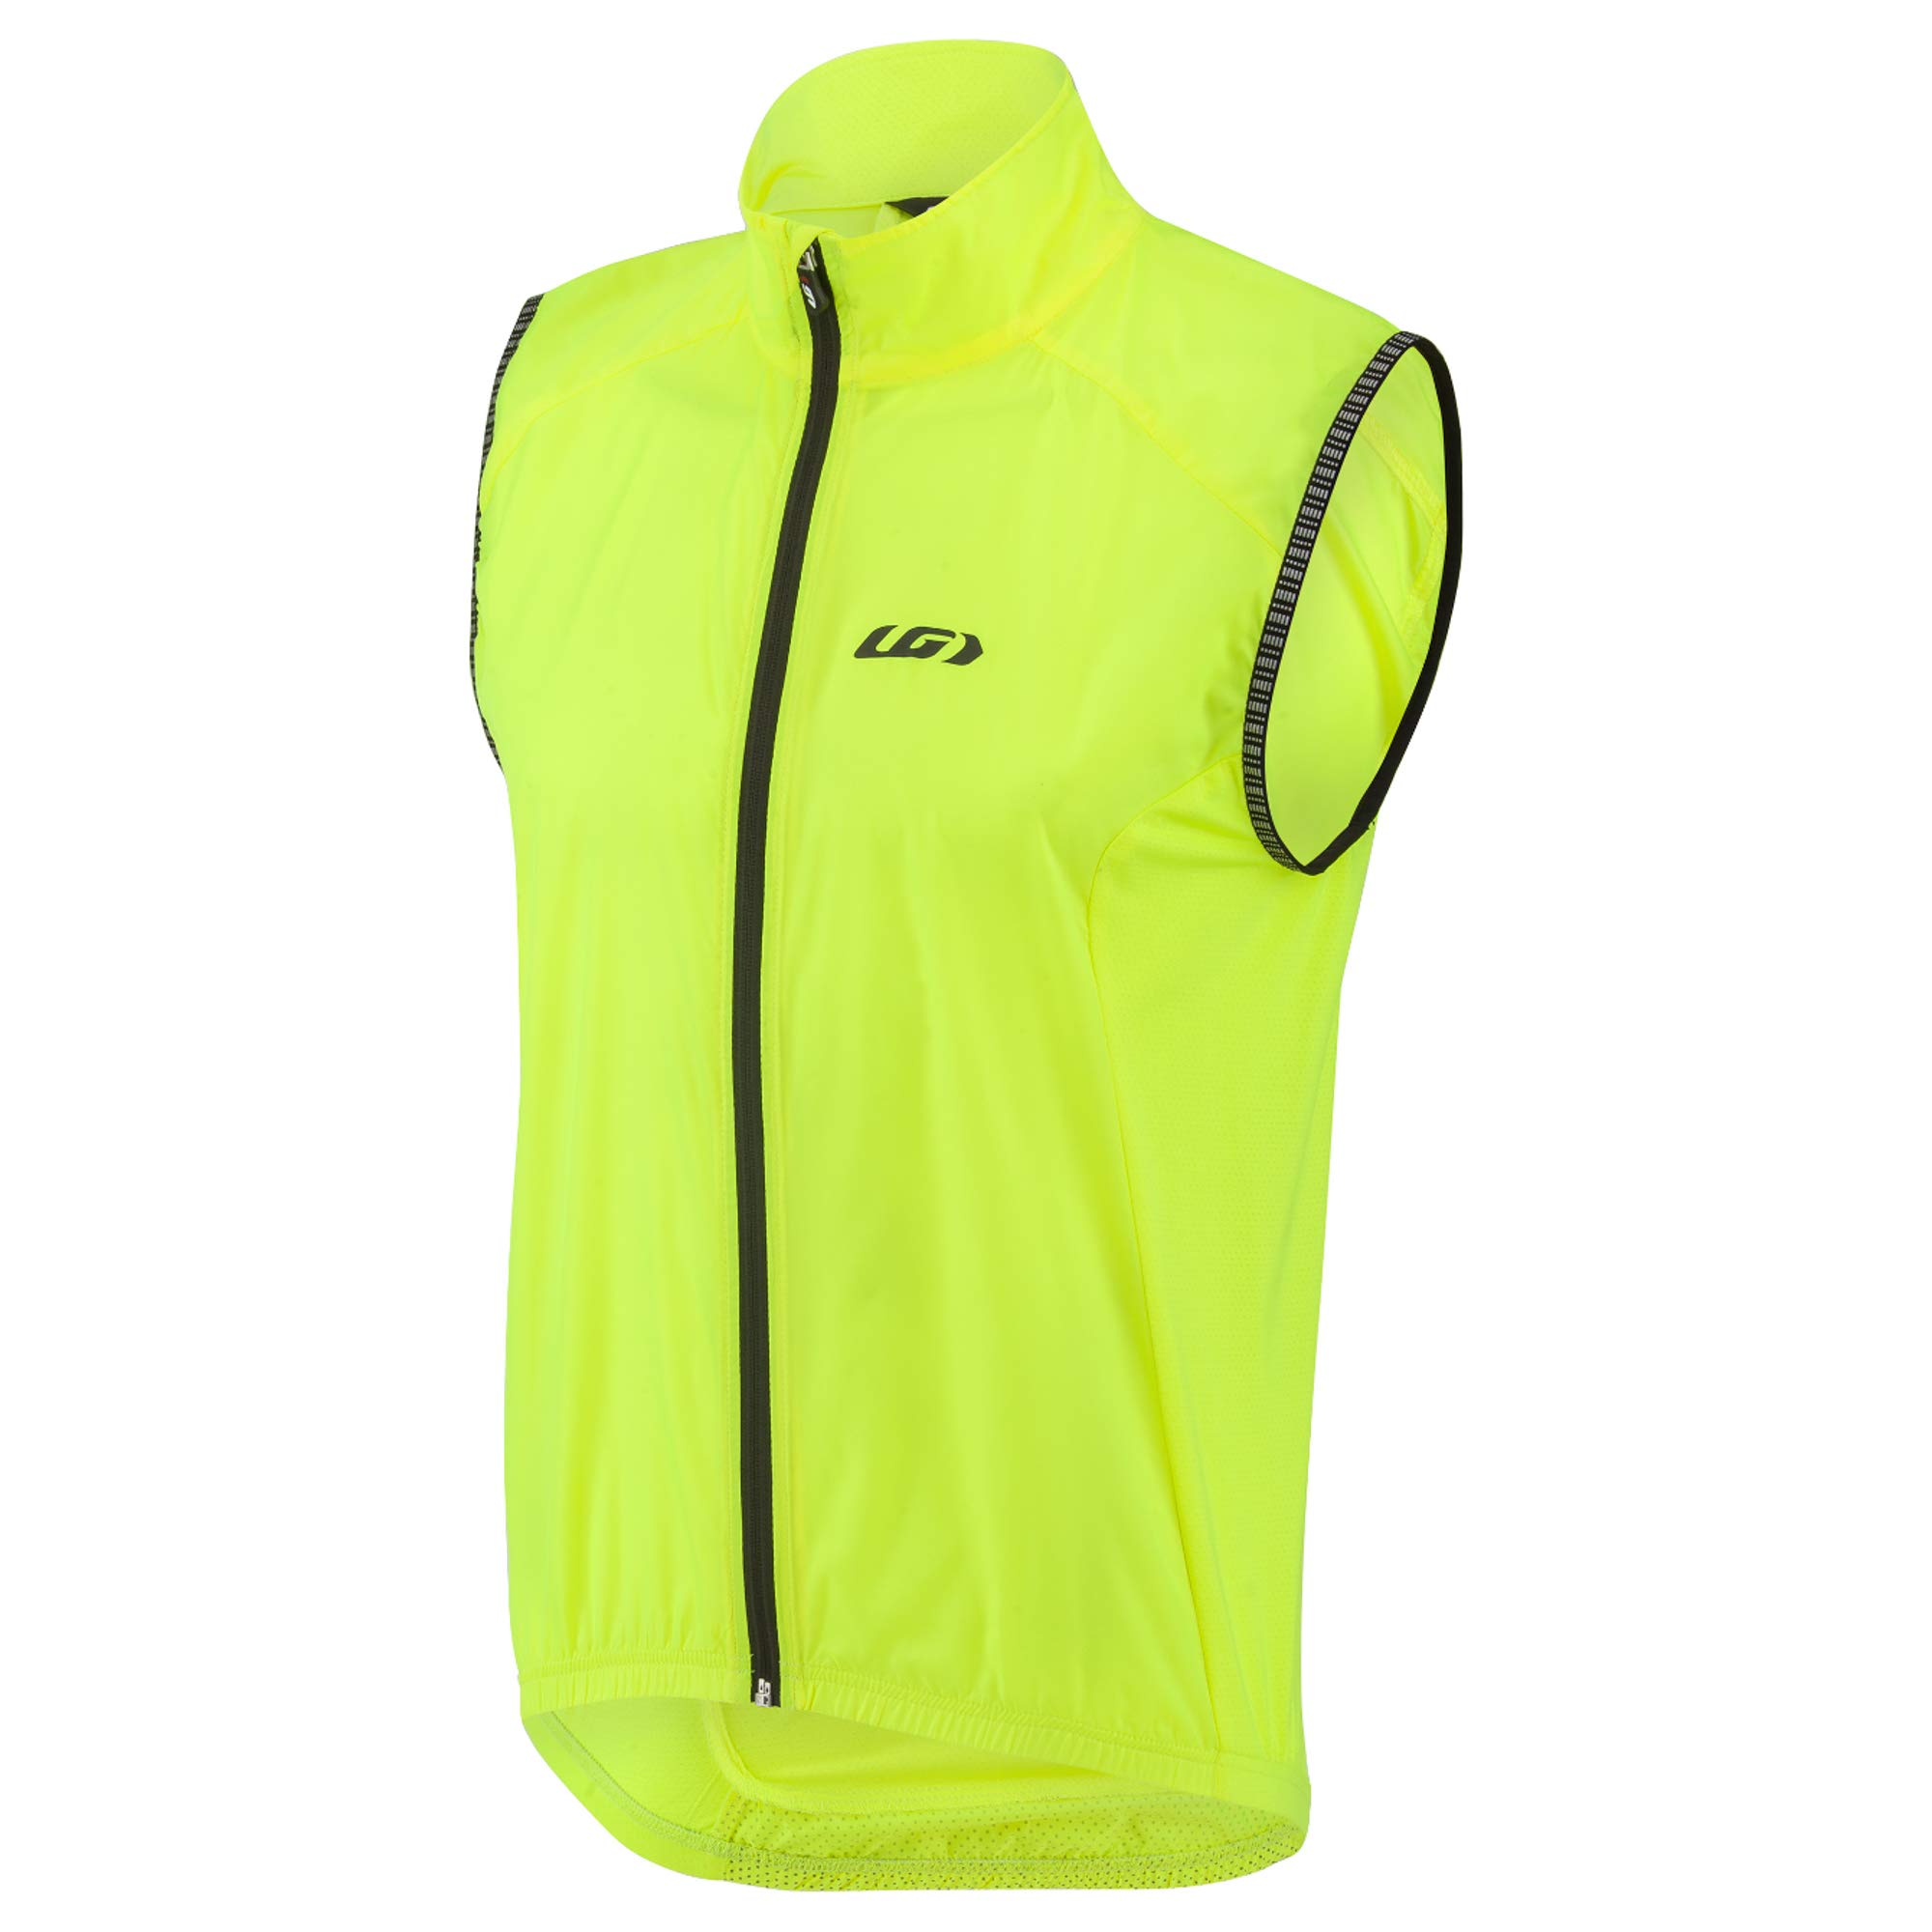 Louis Garneau Men's Nova 2 Bike Vest, Bright Yellow, XX-Large by Louis Garneau